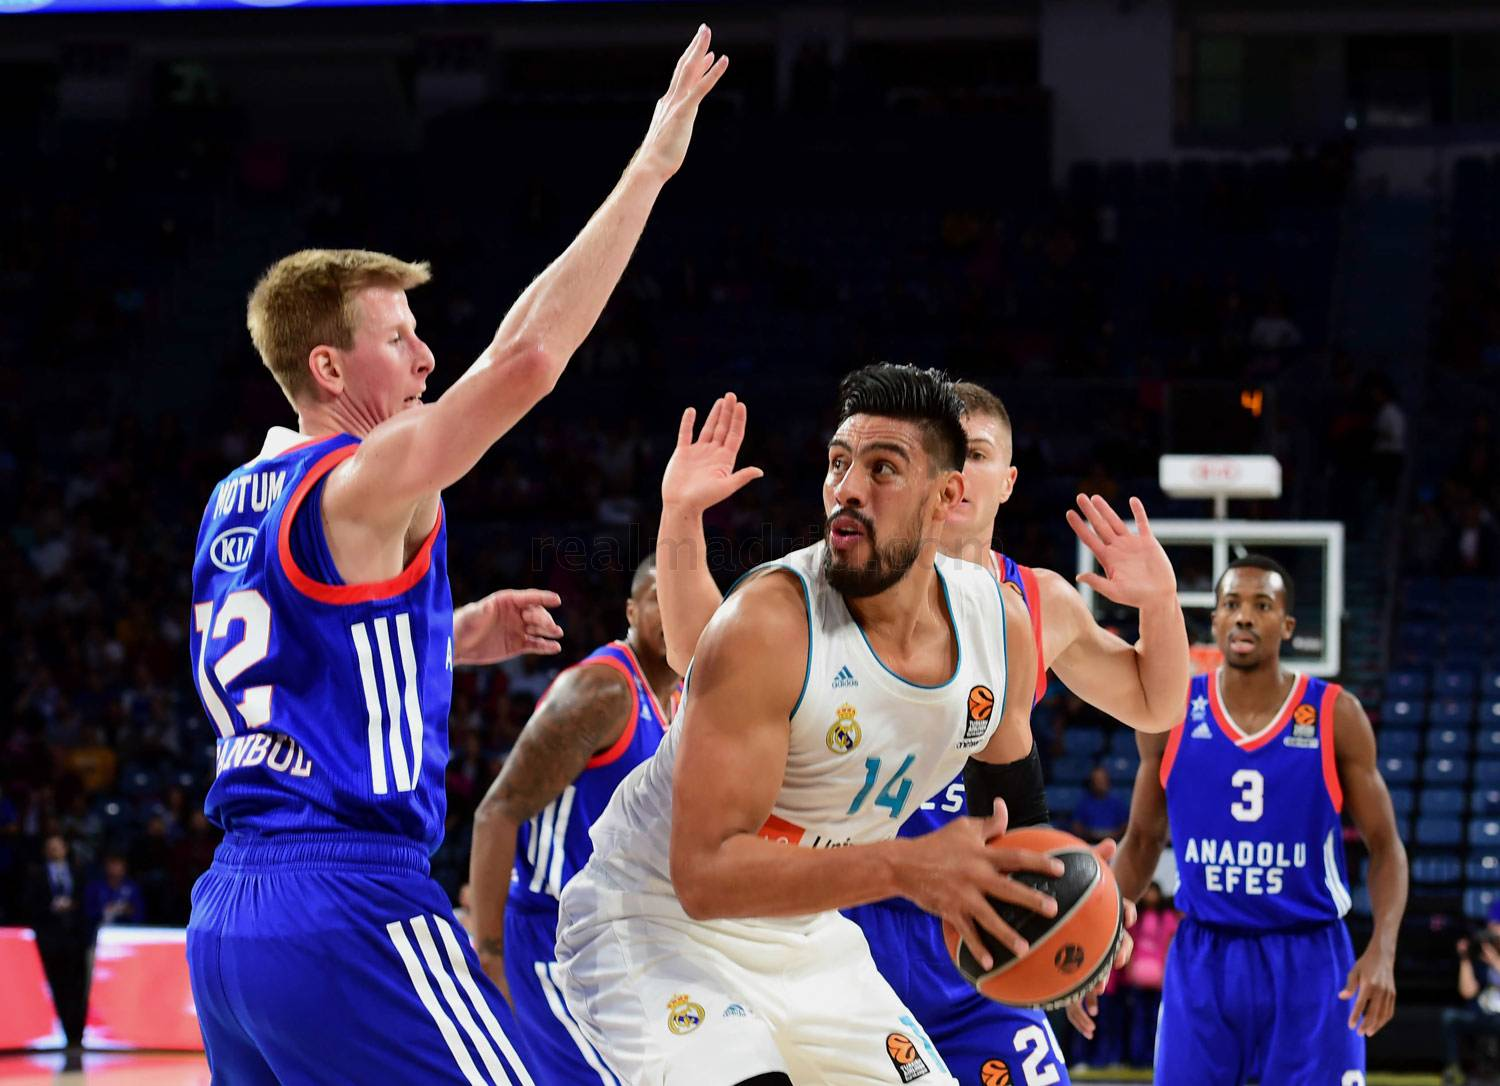 Real Madrid - Anadolu Efes - Real Madrid - 13-10-2017